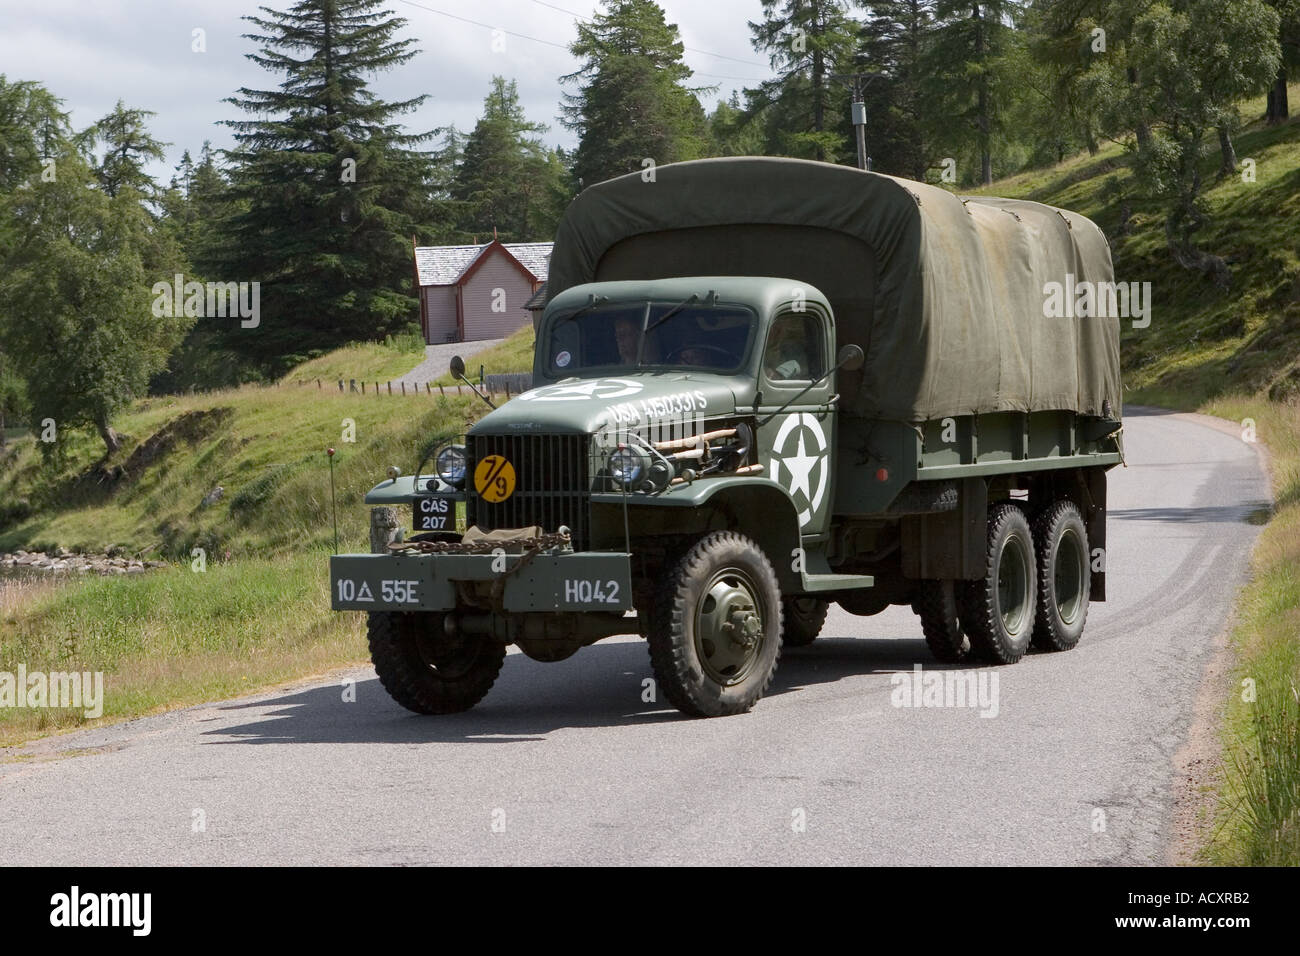 Half Ton Truck >> GMC CCKW 6 X 6 American army truck (a two-and-a-half ton vehicle that Stock Photo: 4325297 - Alamy